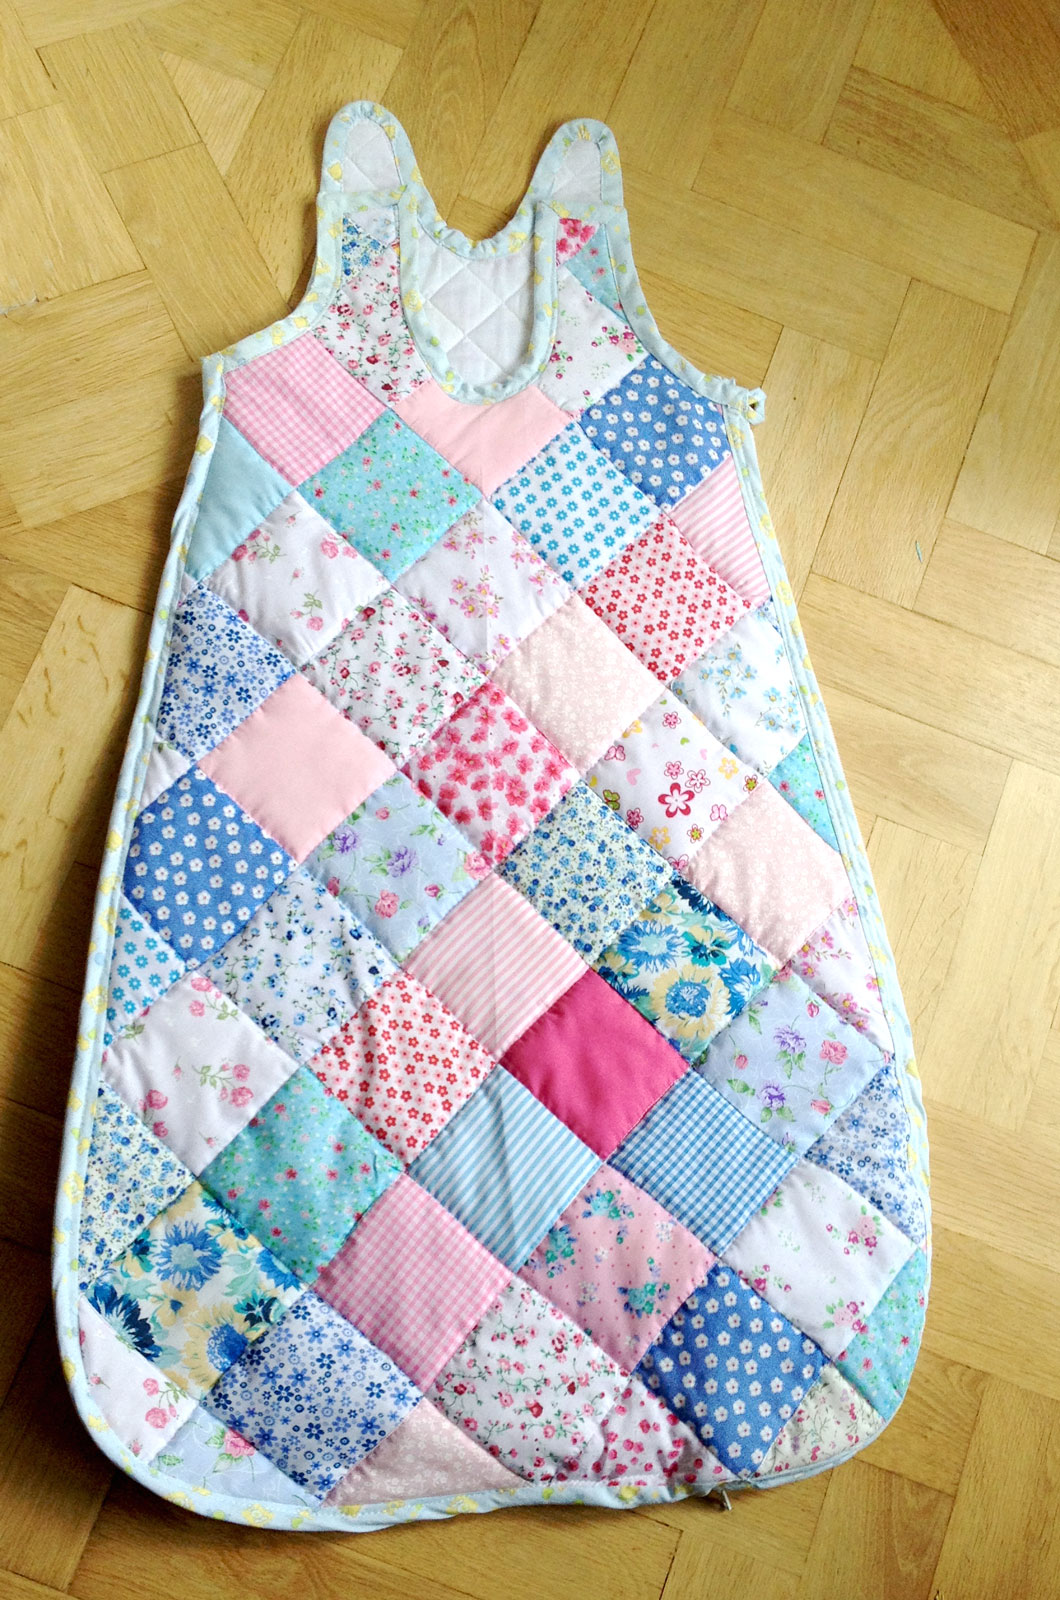 new grandma wants to sew a quilted baby sleeping bag. Black Bedroom Furniture Sets. Home Design Ideas